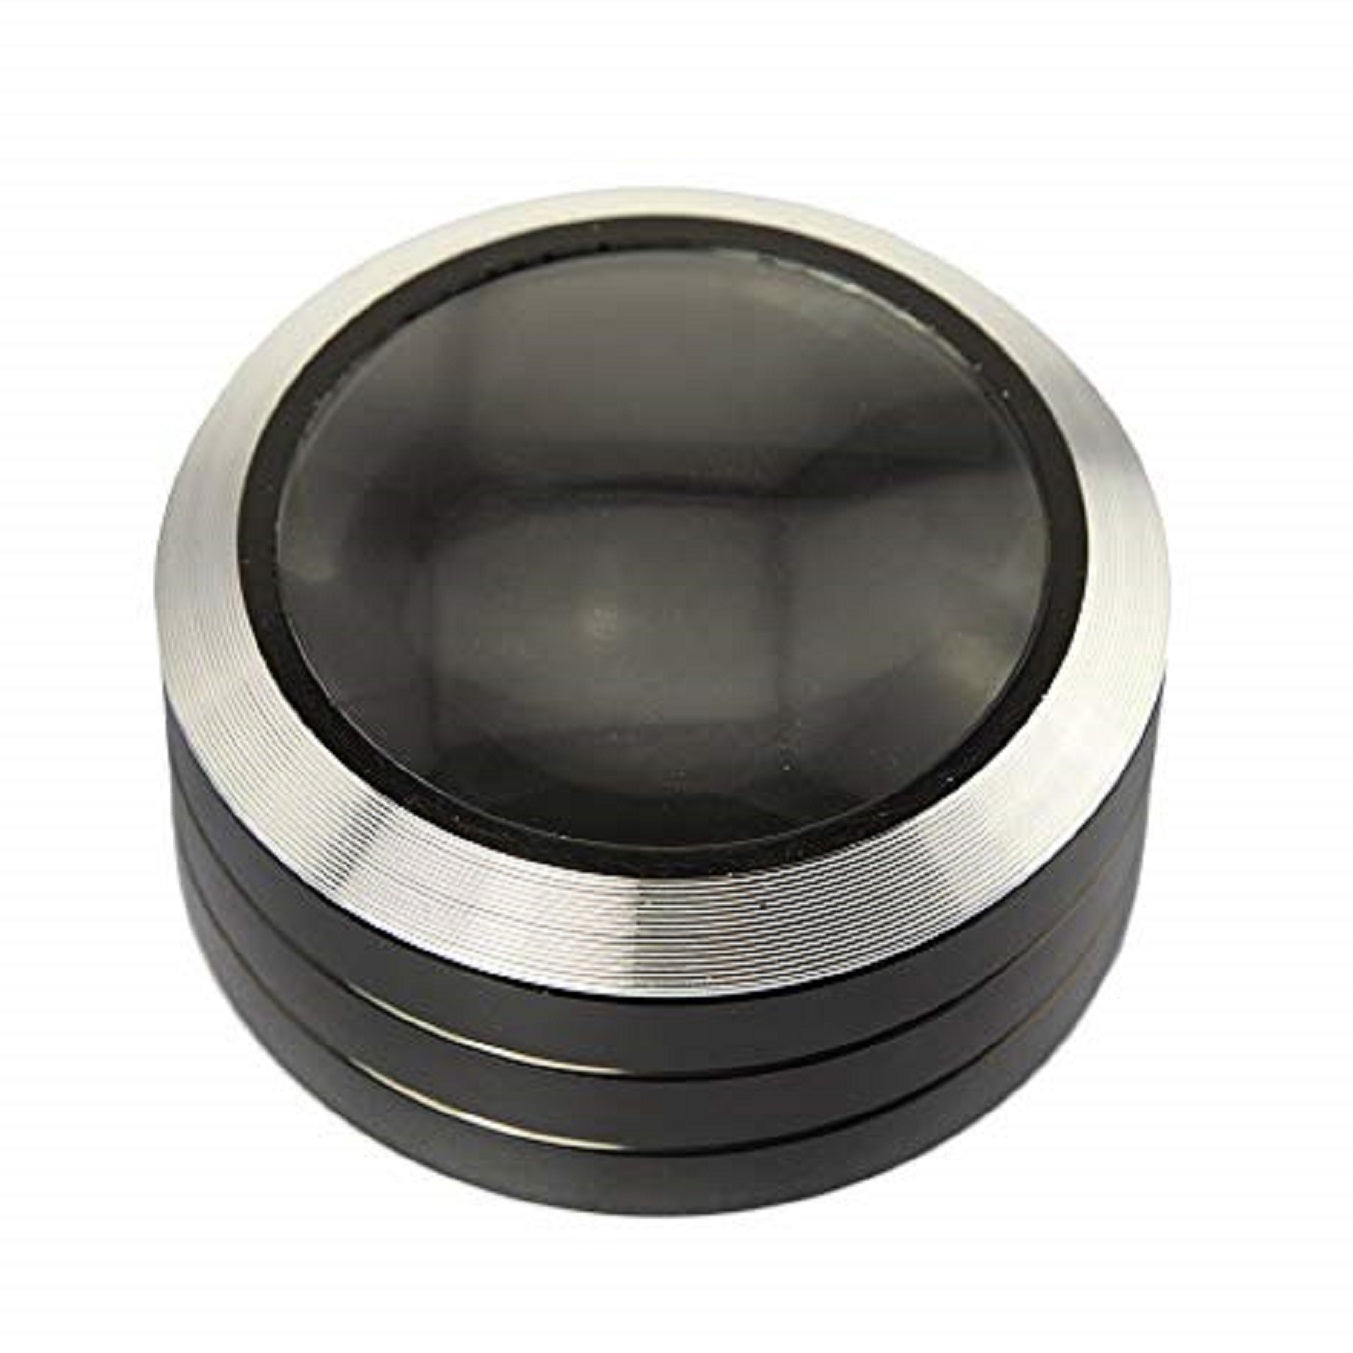 ARNOTTS 5X Magnification 3 LED Paperweight - 9cm diameter 5cm height